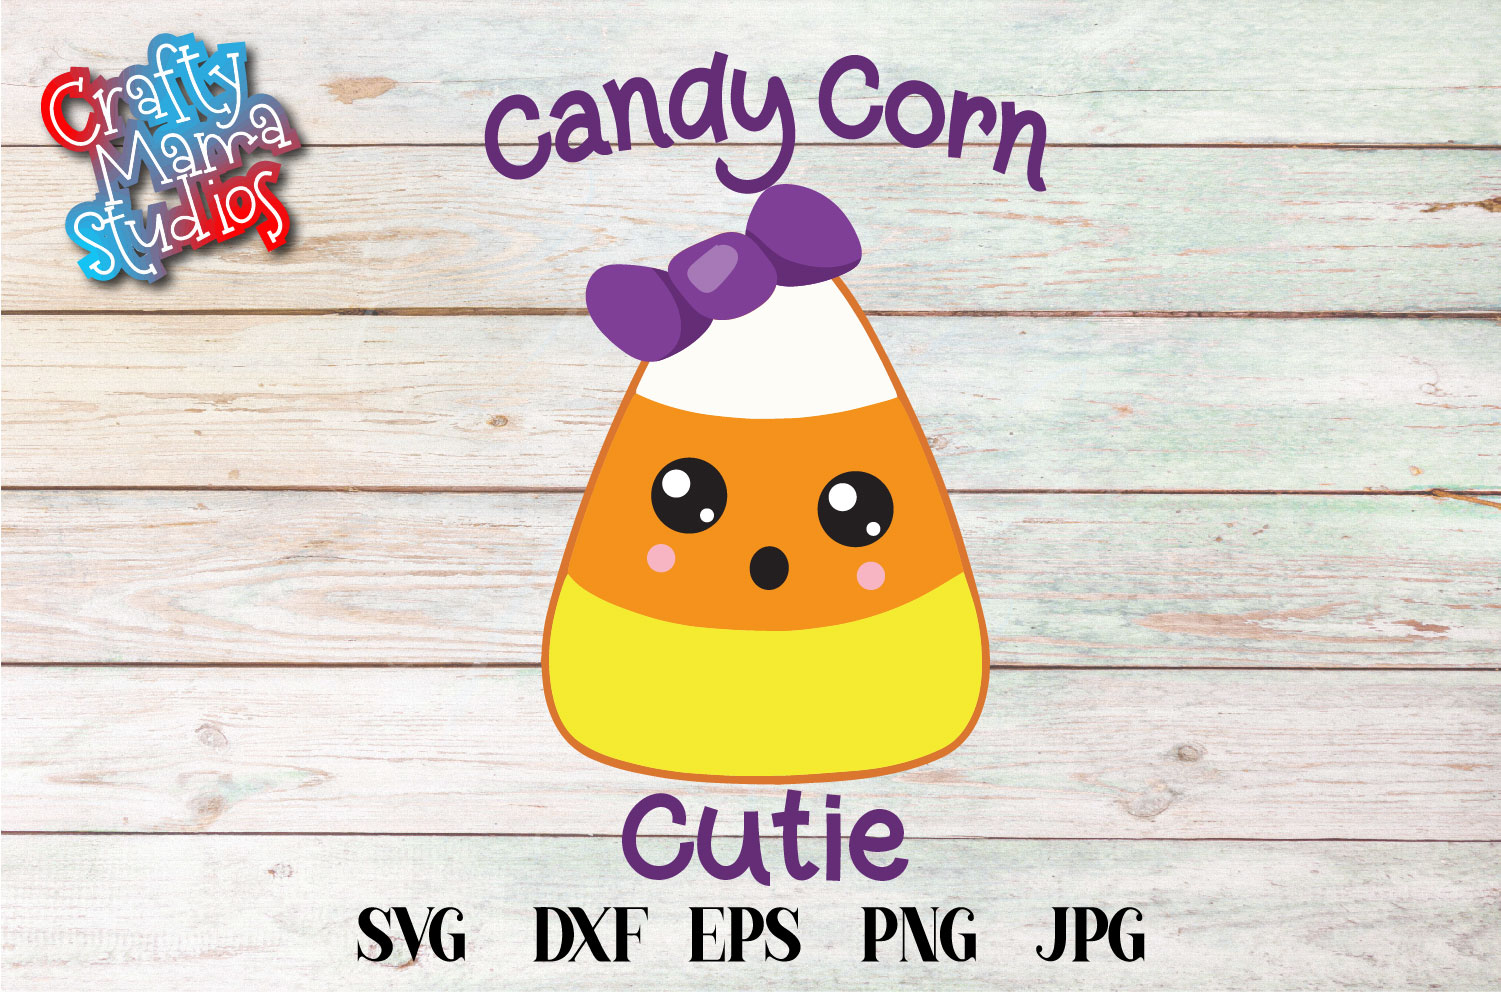 Candy Corn Cutie SVG Sublimation, Halloween SVG File example image 2